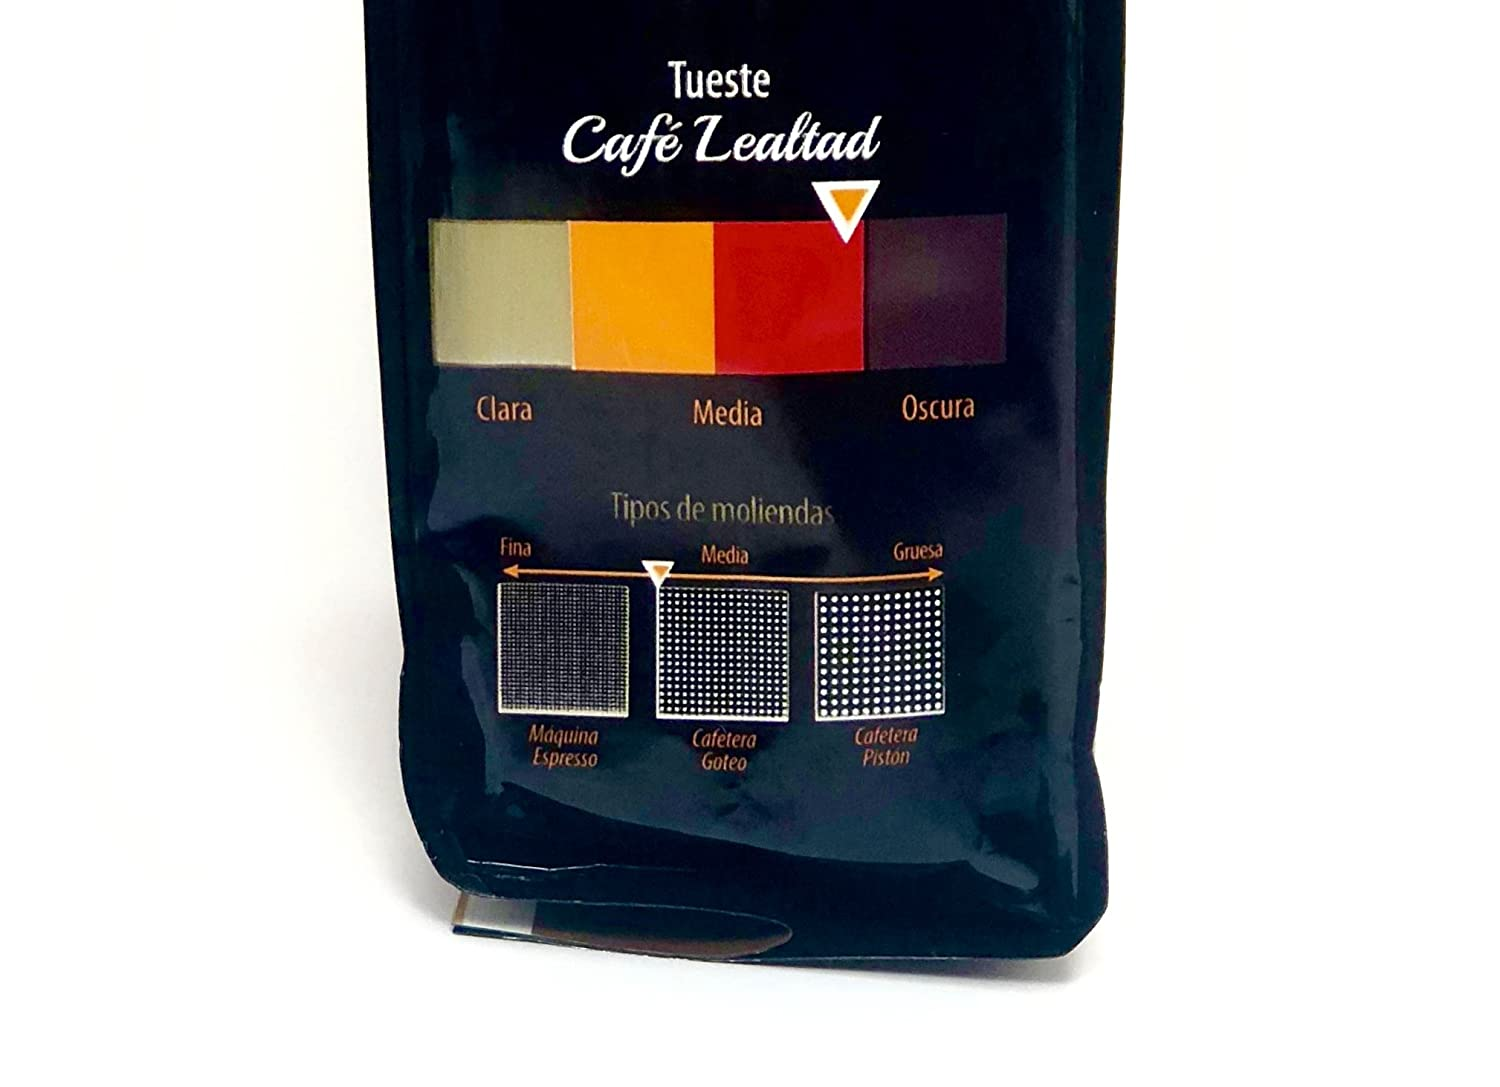 Amazon.com : Cafe Lealtad, 100% Arabica Ground Coffee, 8 Ounce : Grocery & Gourmet Food